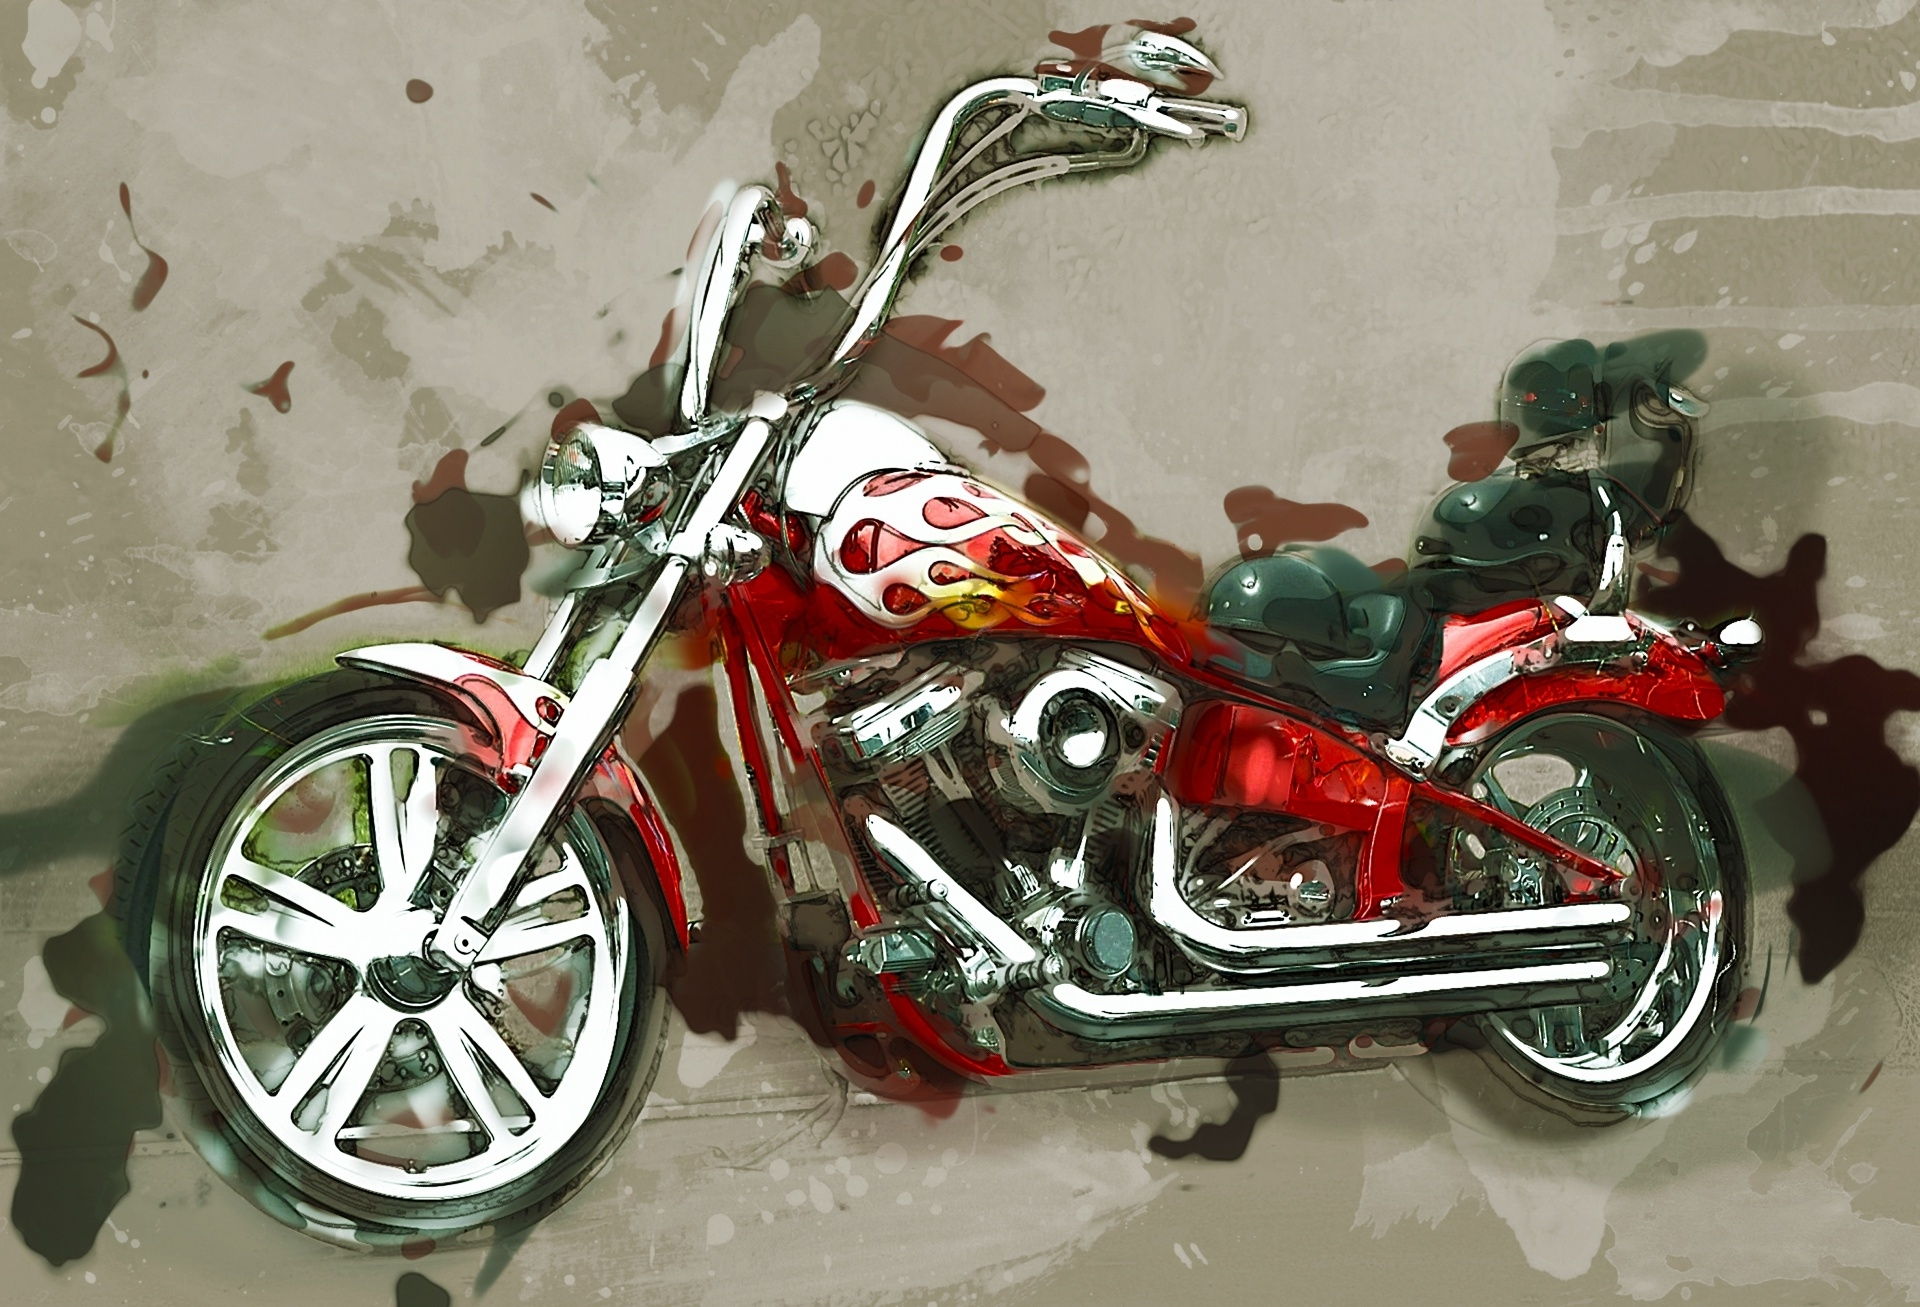 Motorcycle Wall Art Free Stock Photo – Public Domain Pictures Throughout Favorite Motorcycle Wall Art (Gallery 11 of 20)